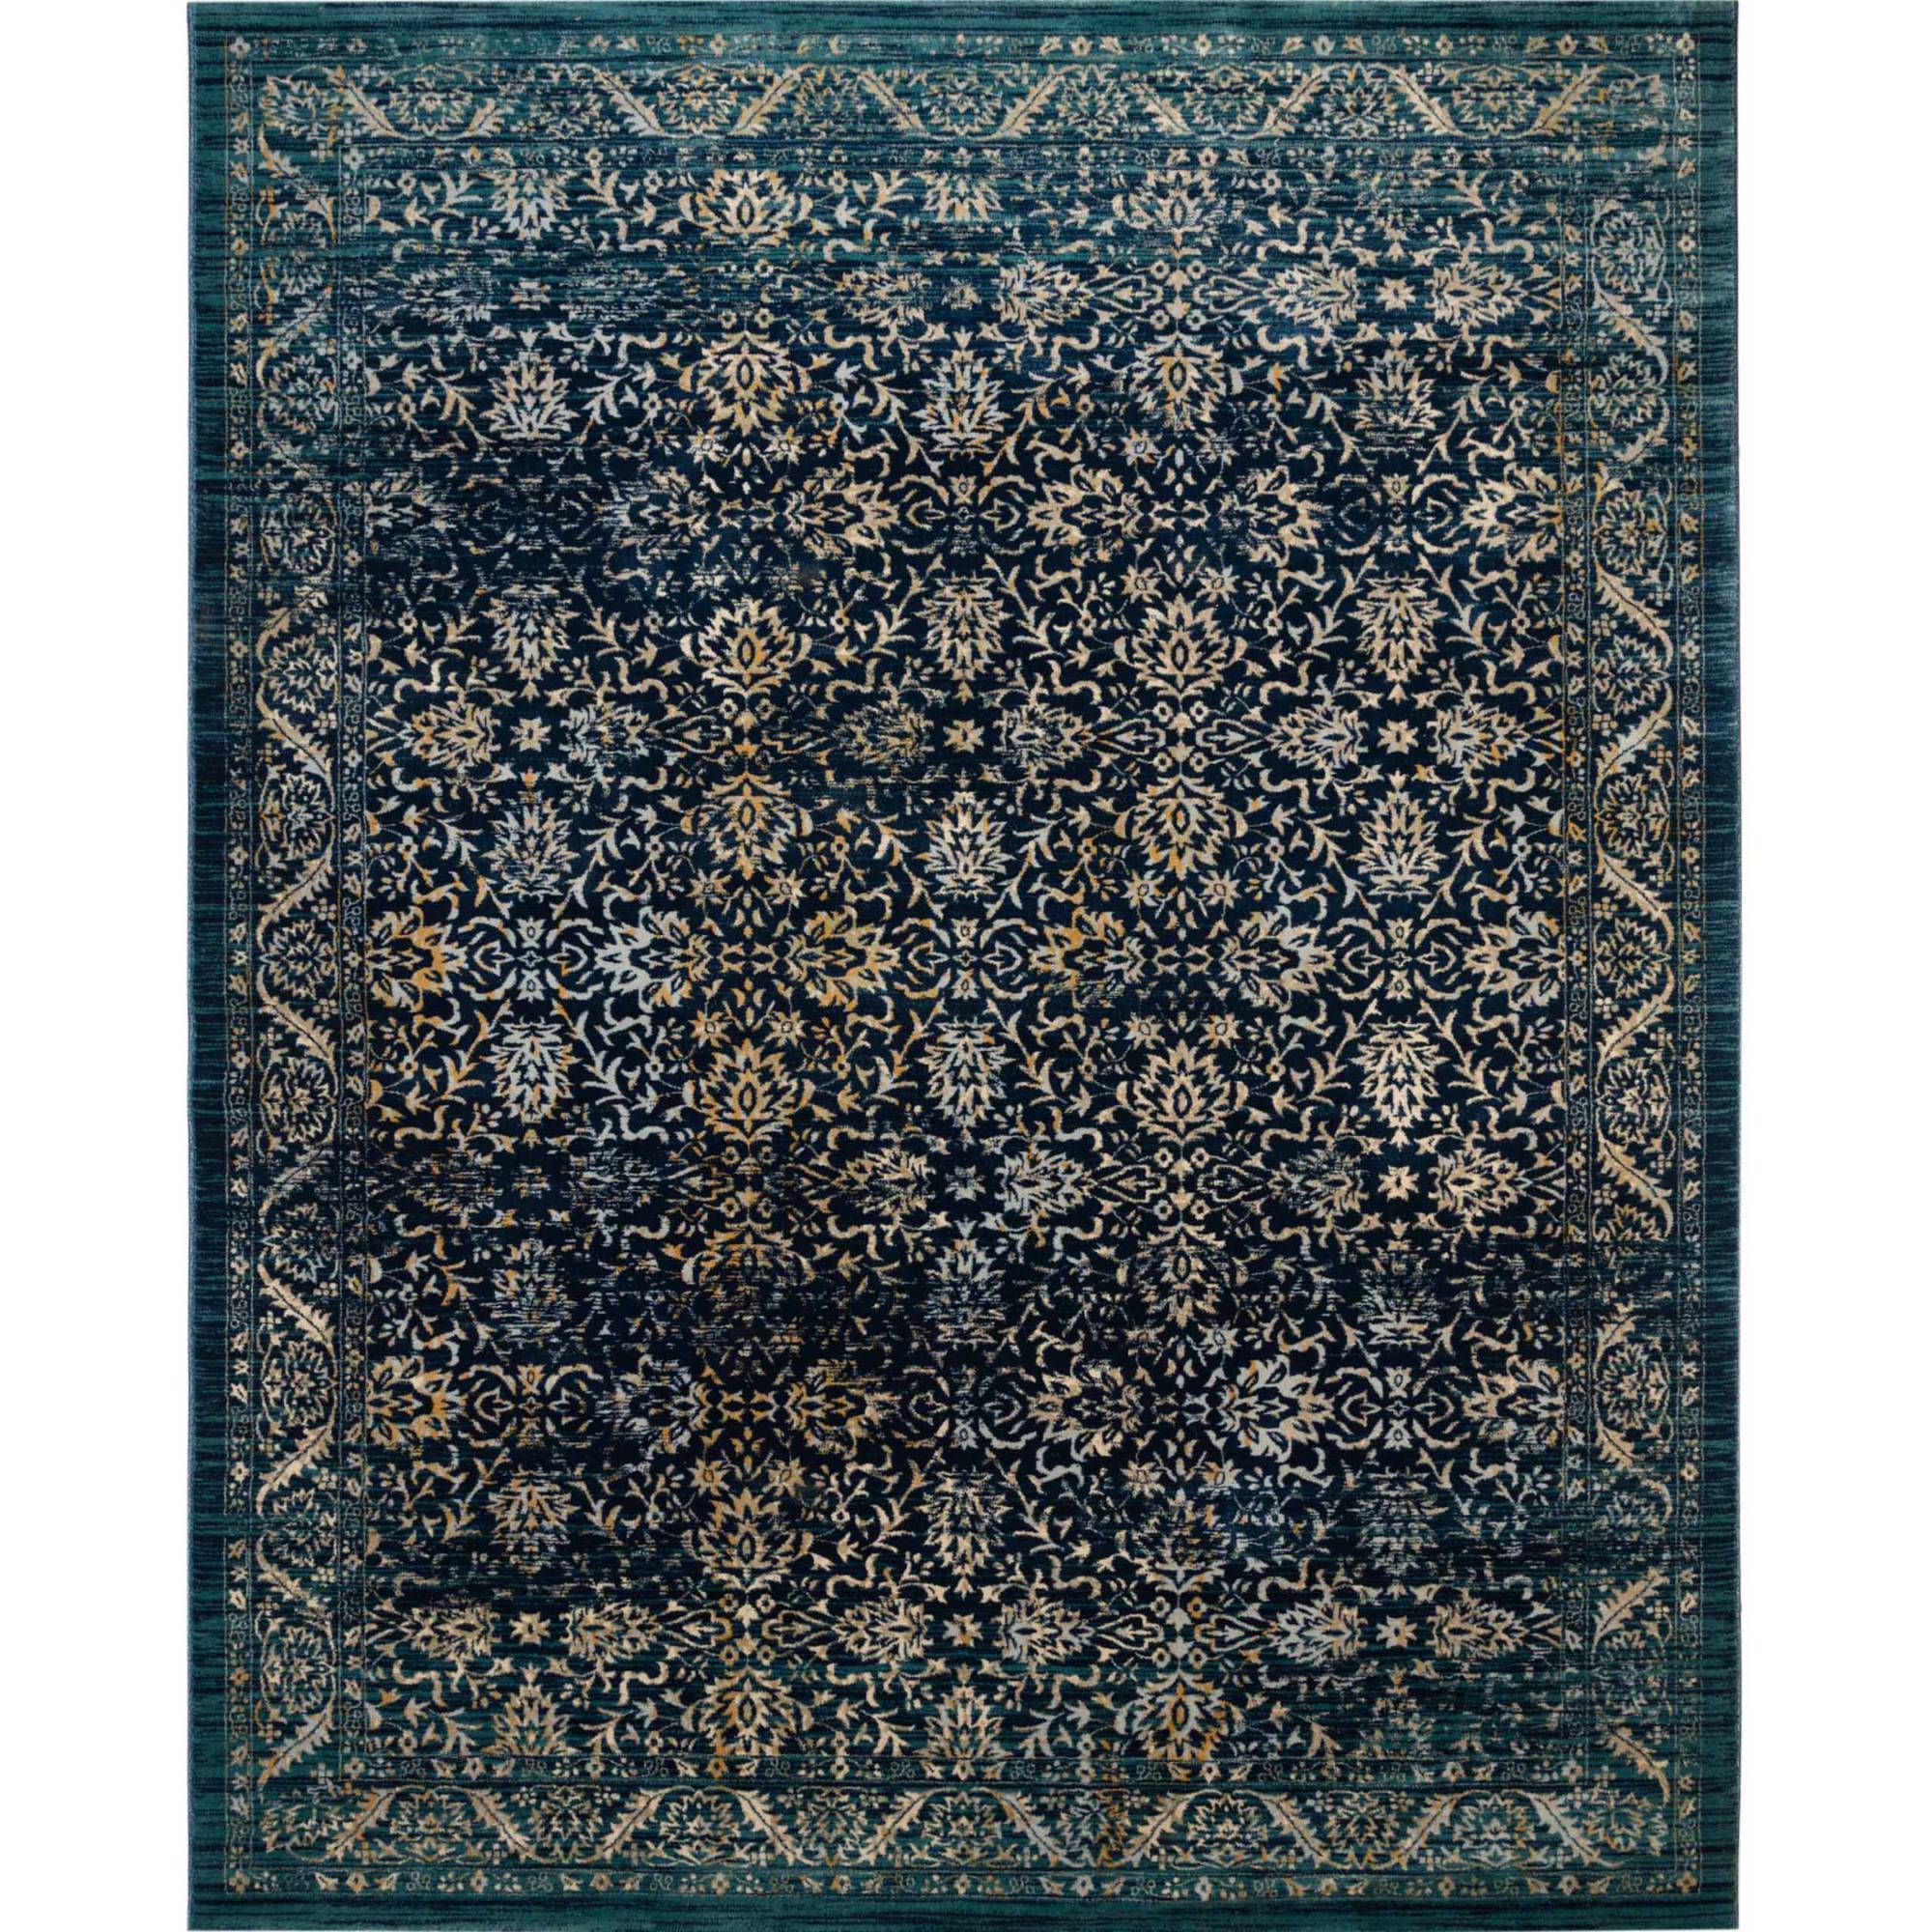 Safavieh Evoke Paden Traditional Area Rug or Runner